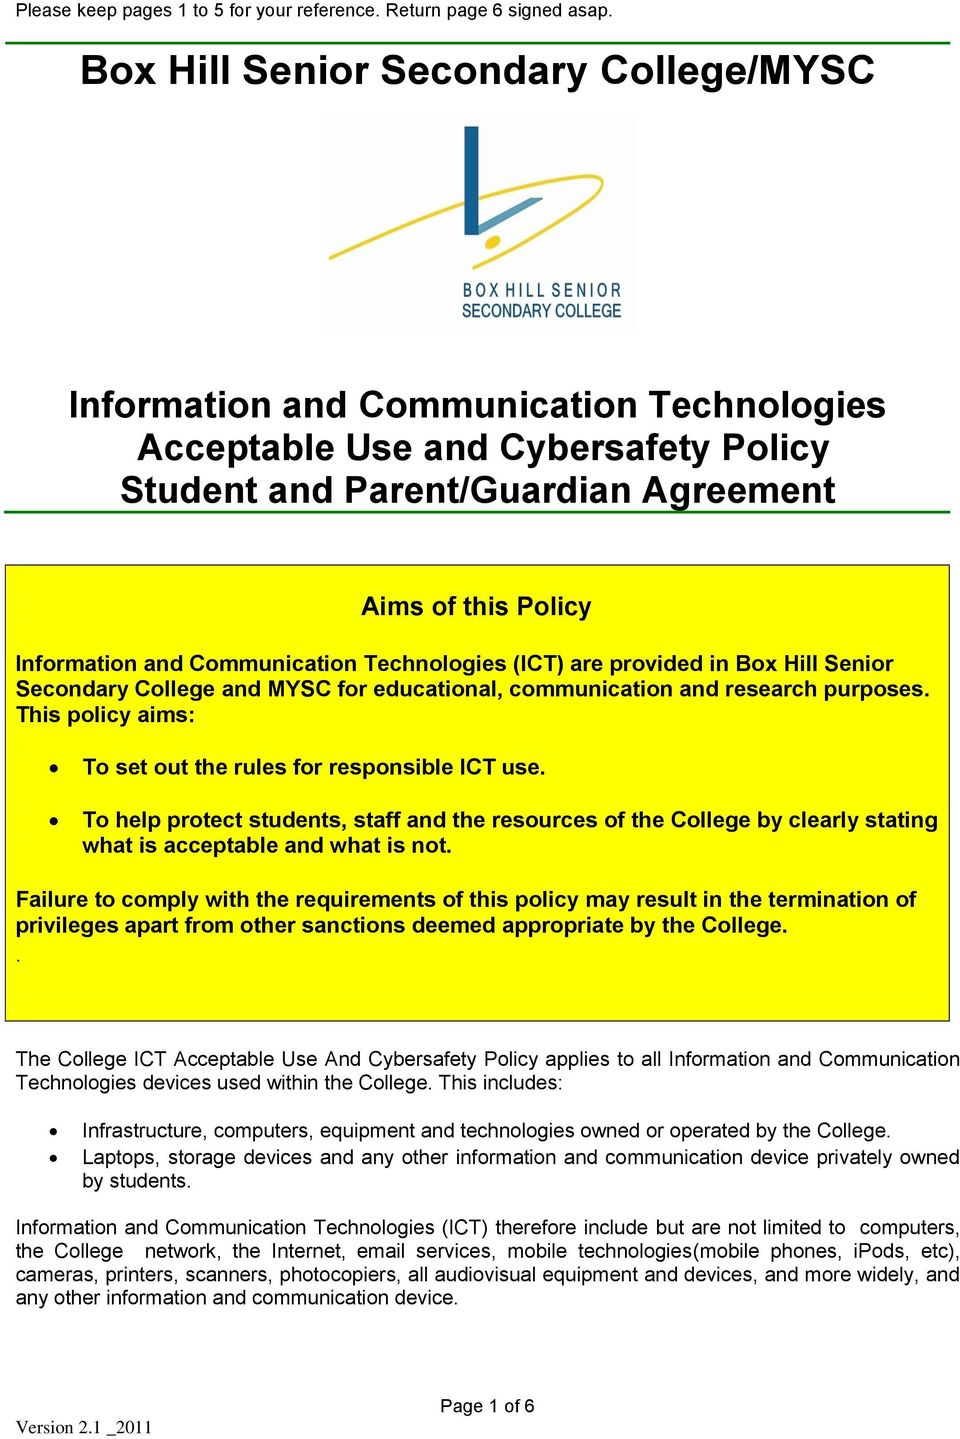 This policy aims: To set out the rules for responsible ICT use. To help protect students, staff and the resources of the College by clearly stating what is acceptable and what is not.